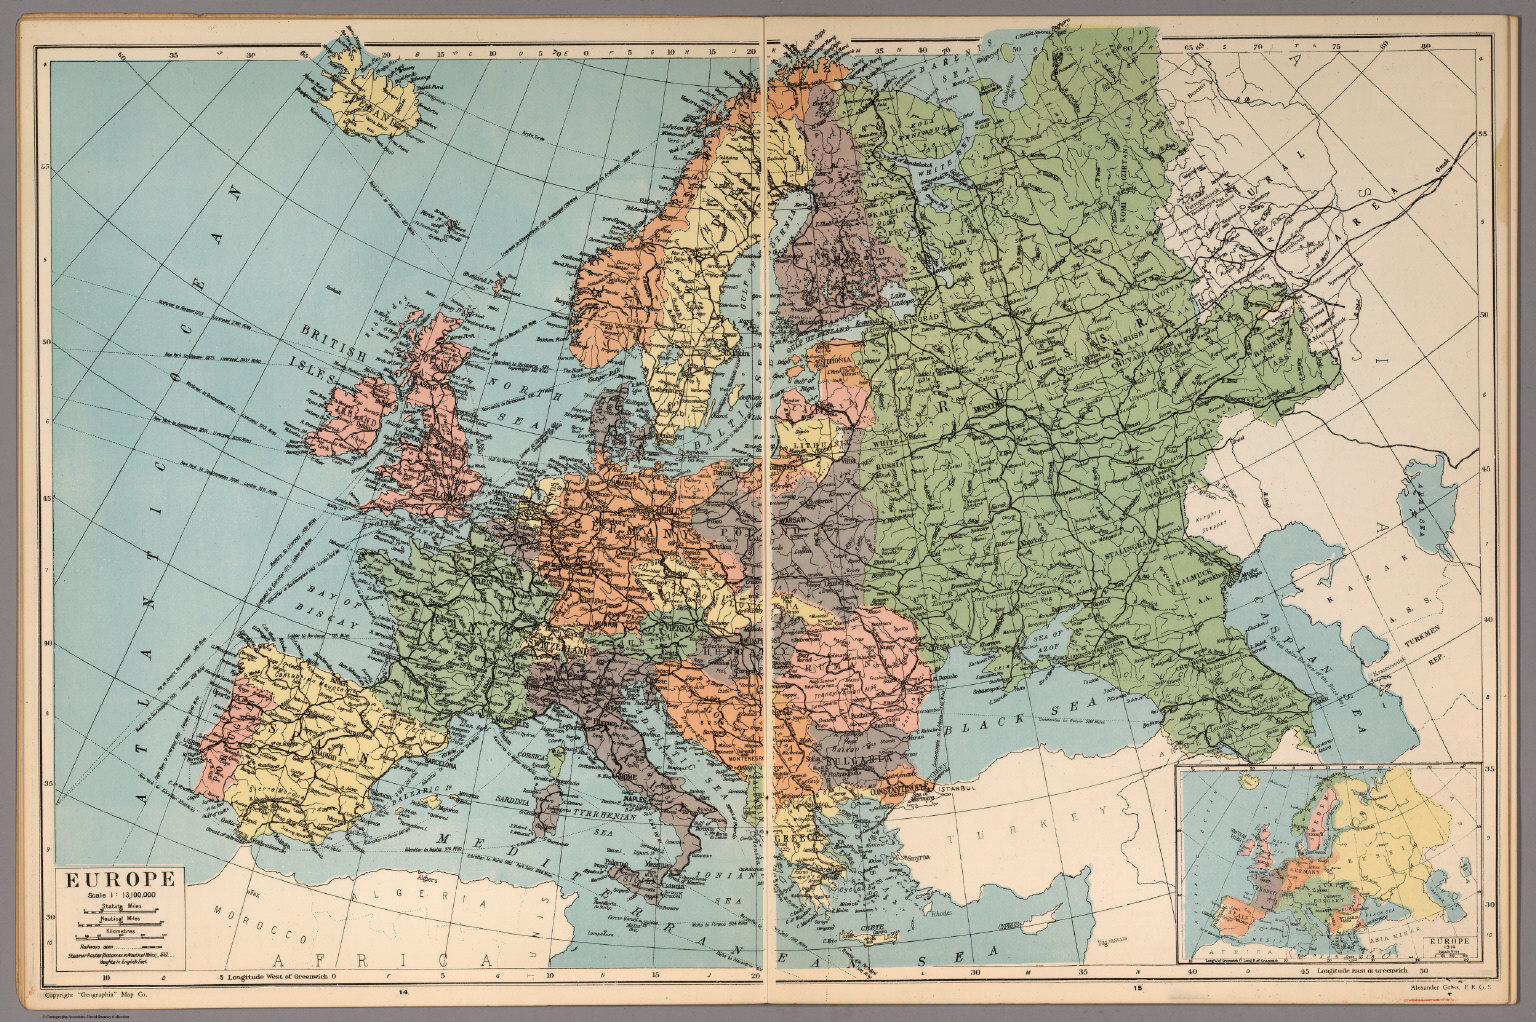 Europe - David Rumsey Historical Map Collection